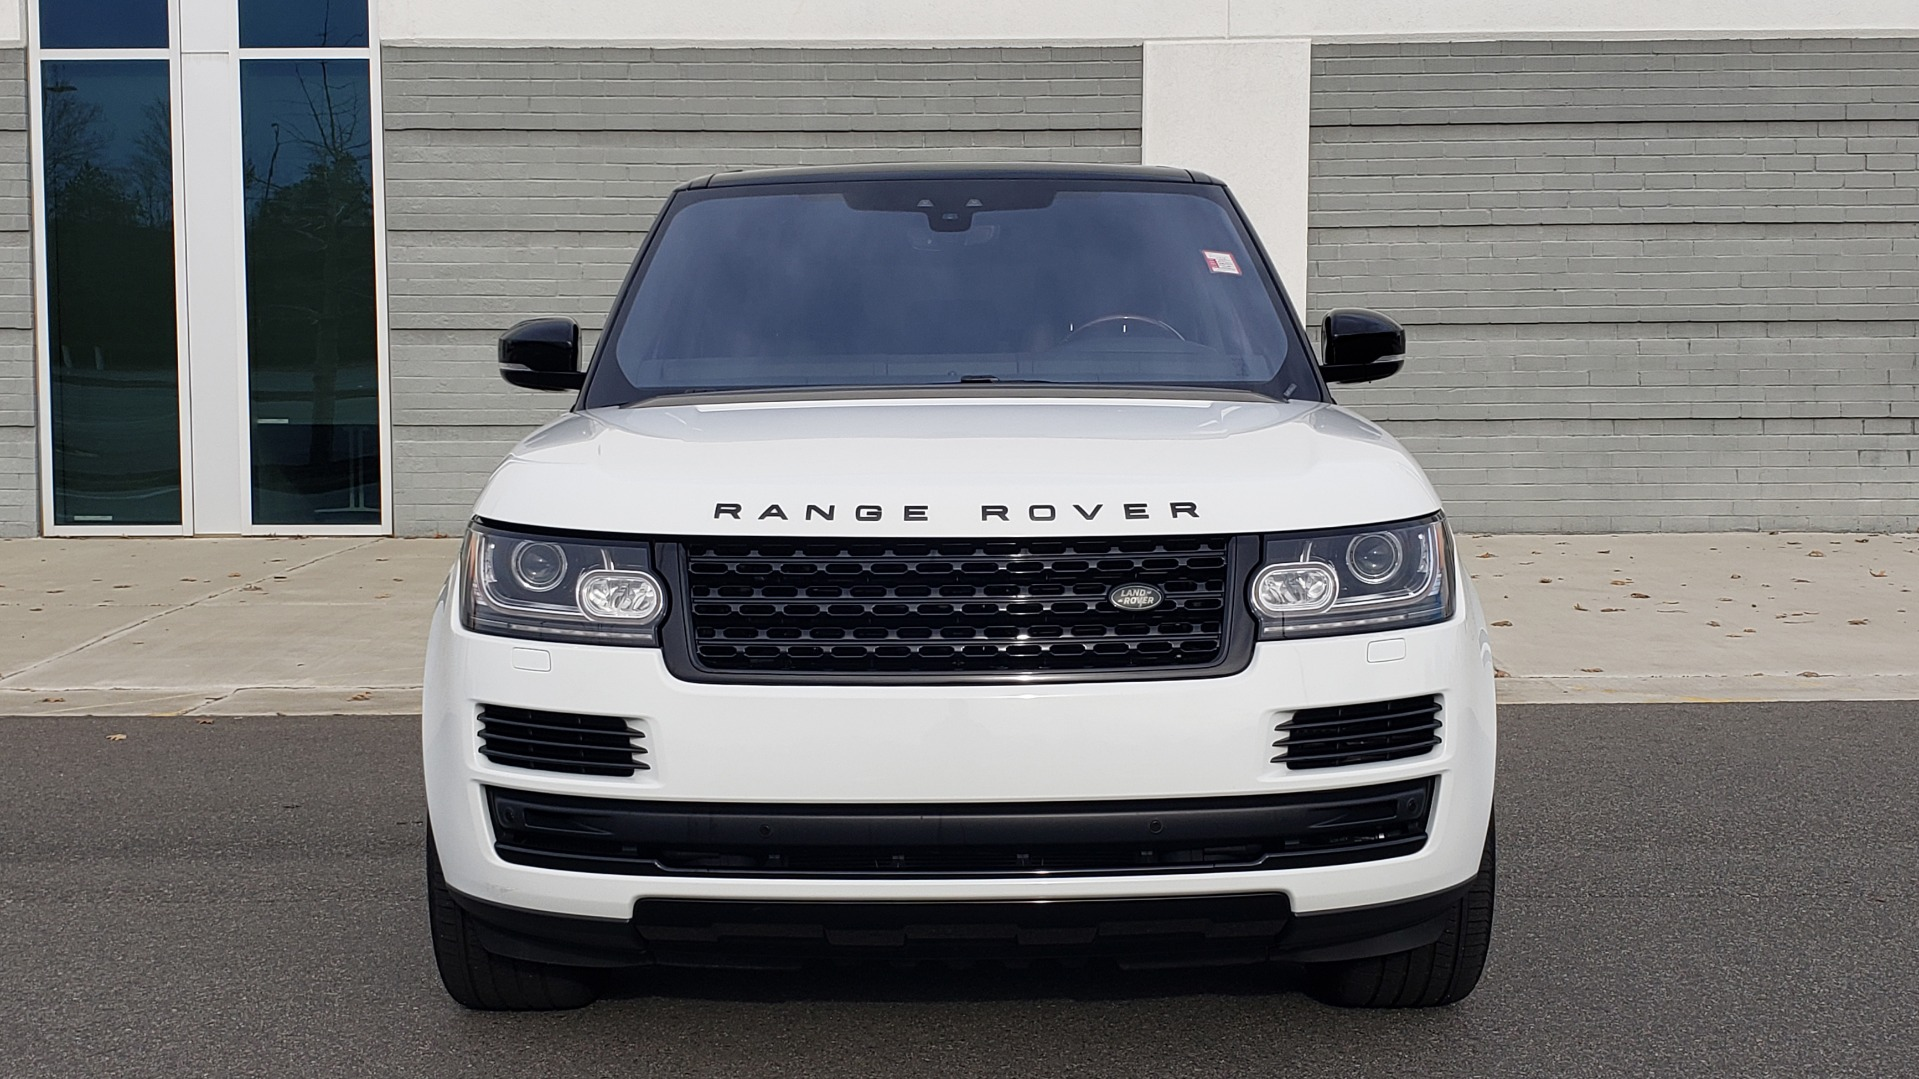 Used 2017 Land Rover RANGE ROVER HSE TD6 DIESEL / 4WD / NAV / MERIDIAN / PANO-ROOF / REARVIEW for sale $59,999 at Formula Imports in Charlotte NC 28227 20